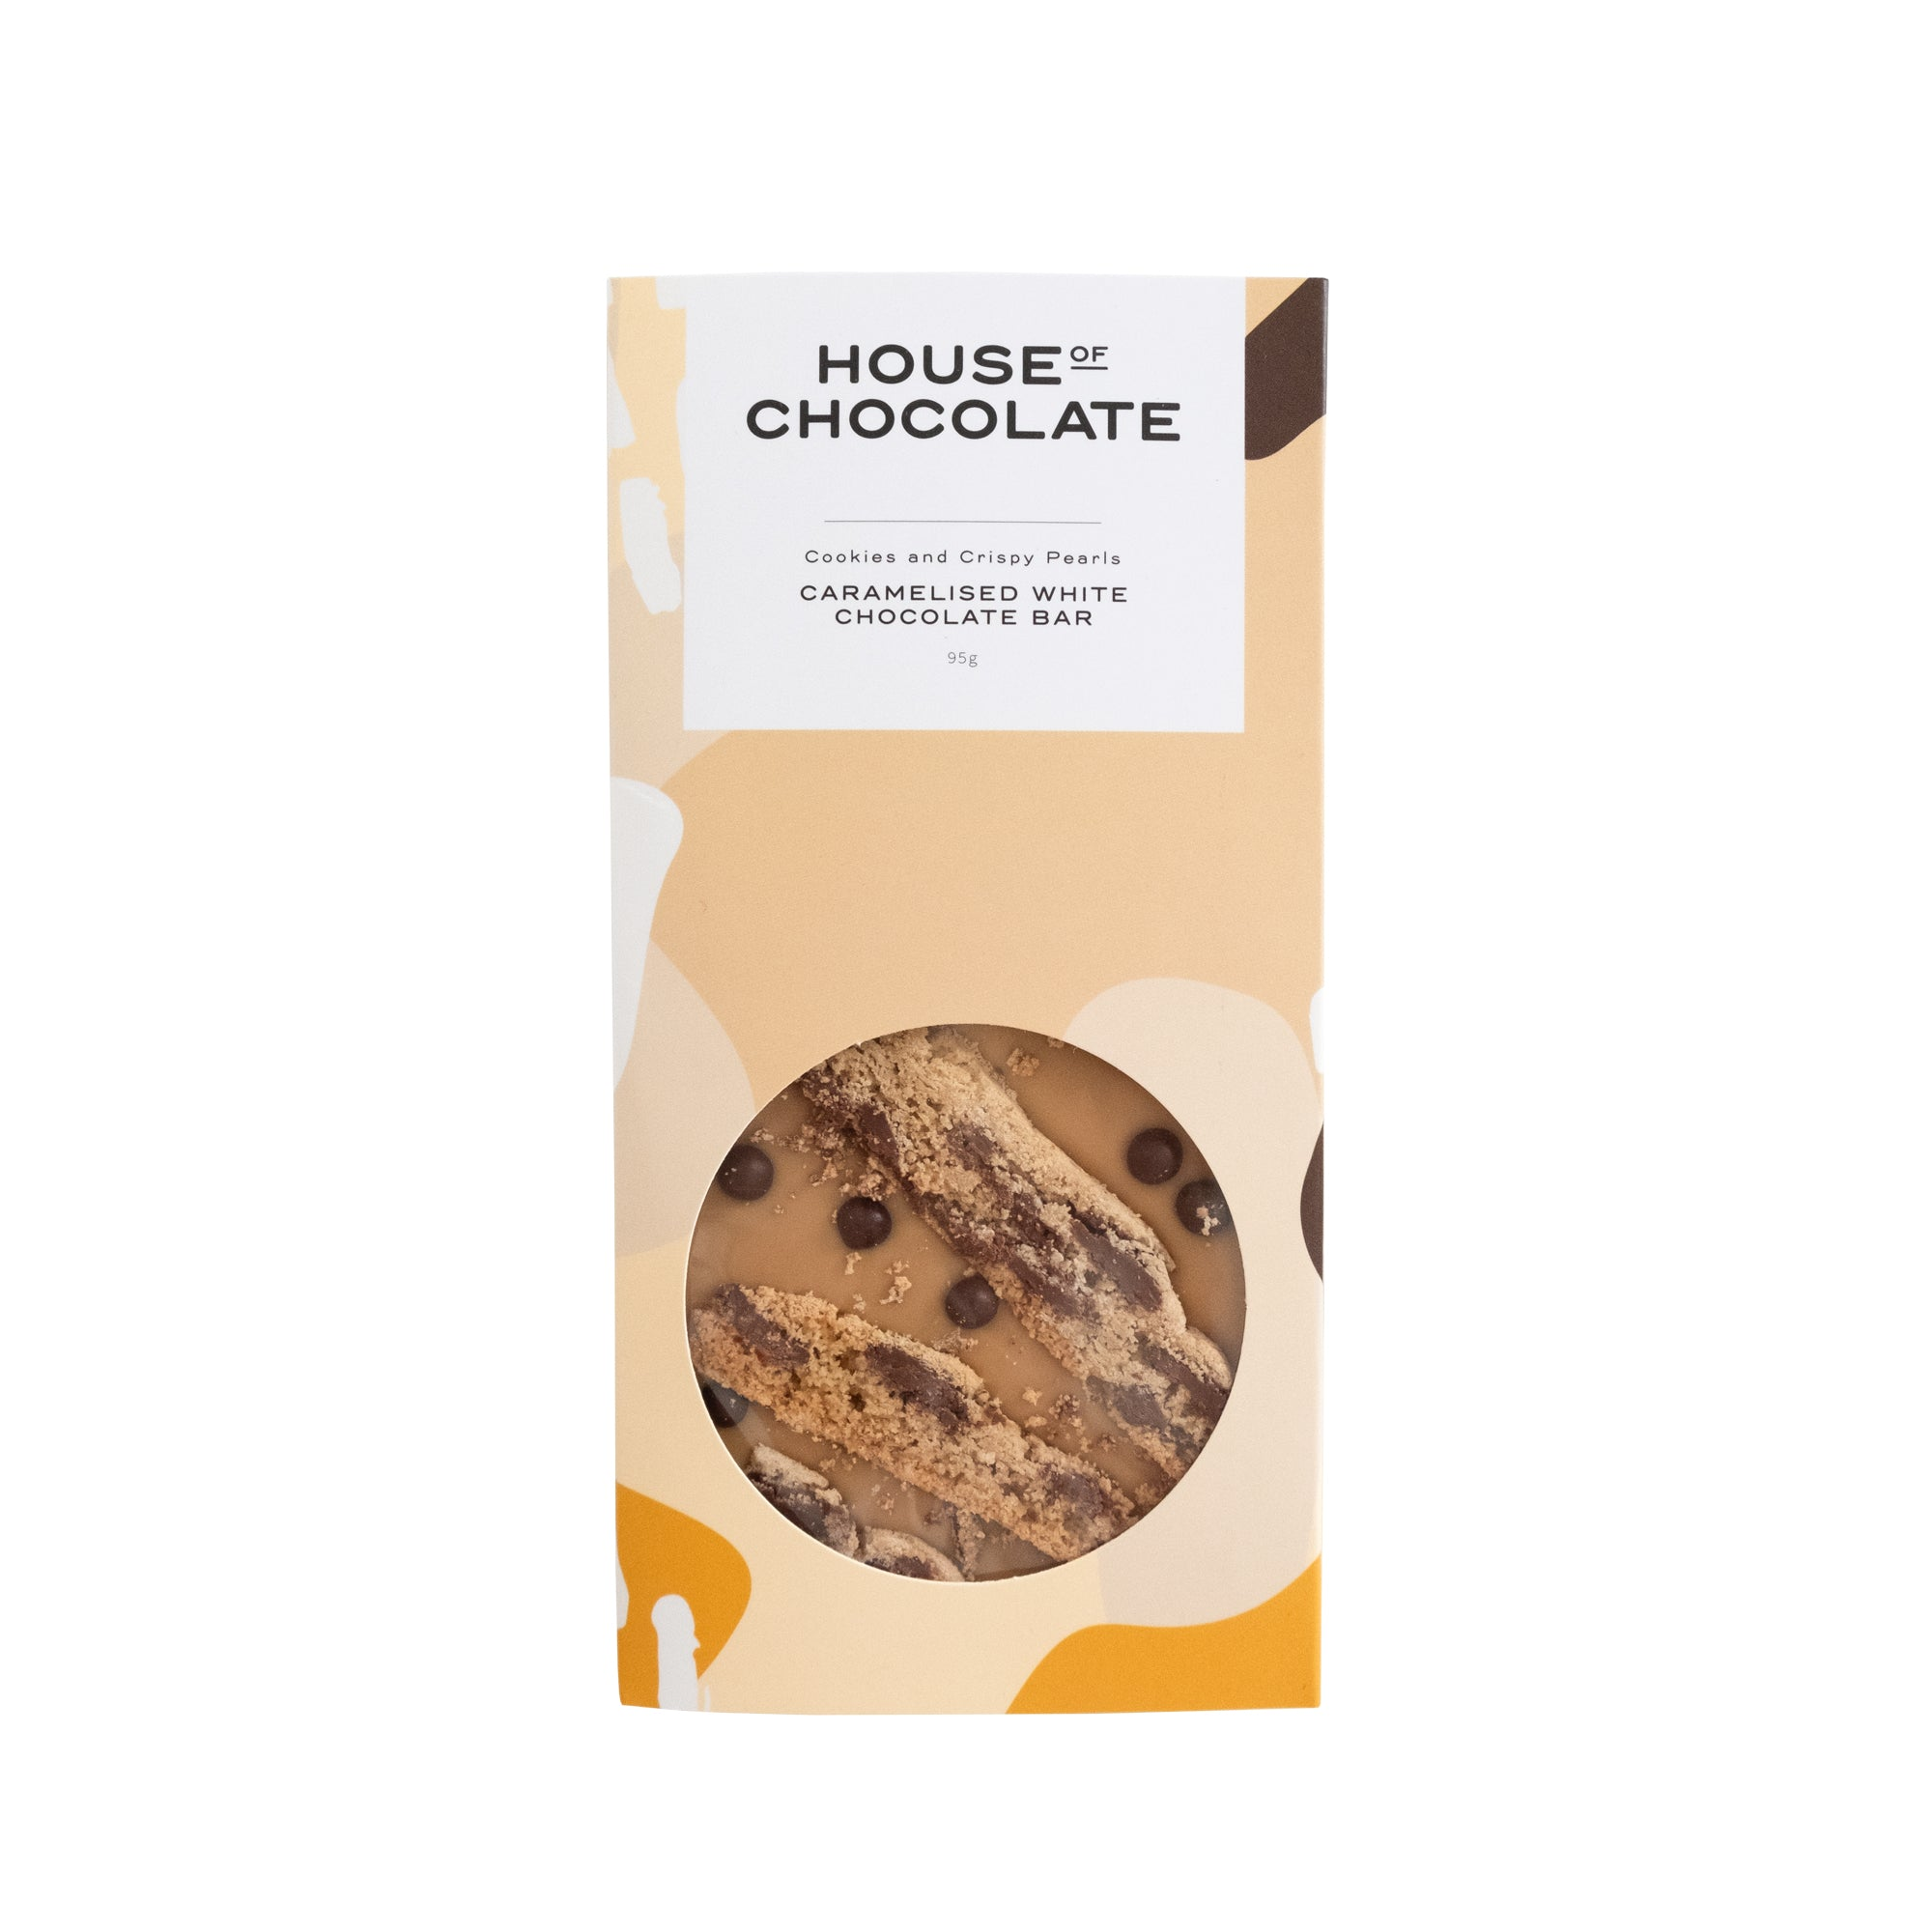 House of Chocolate - Caramelised White Chocolate, Cookies & Pearls Bar